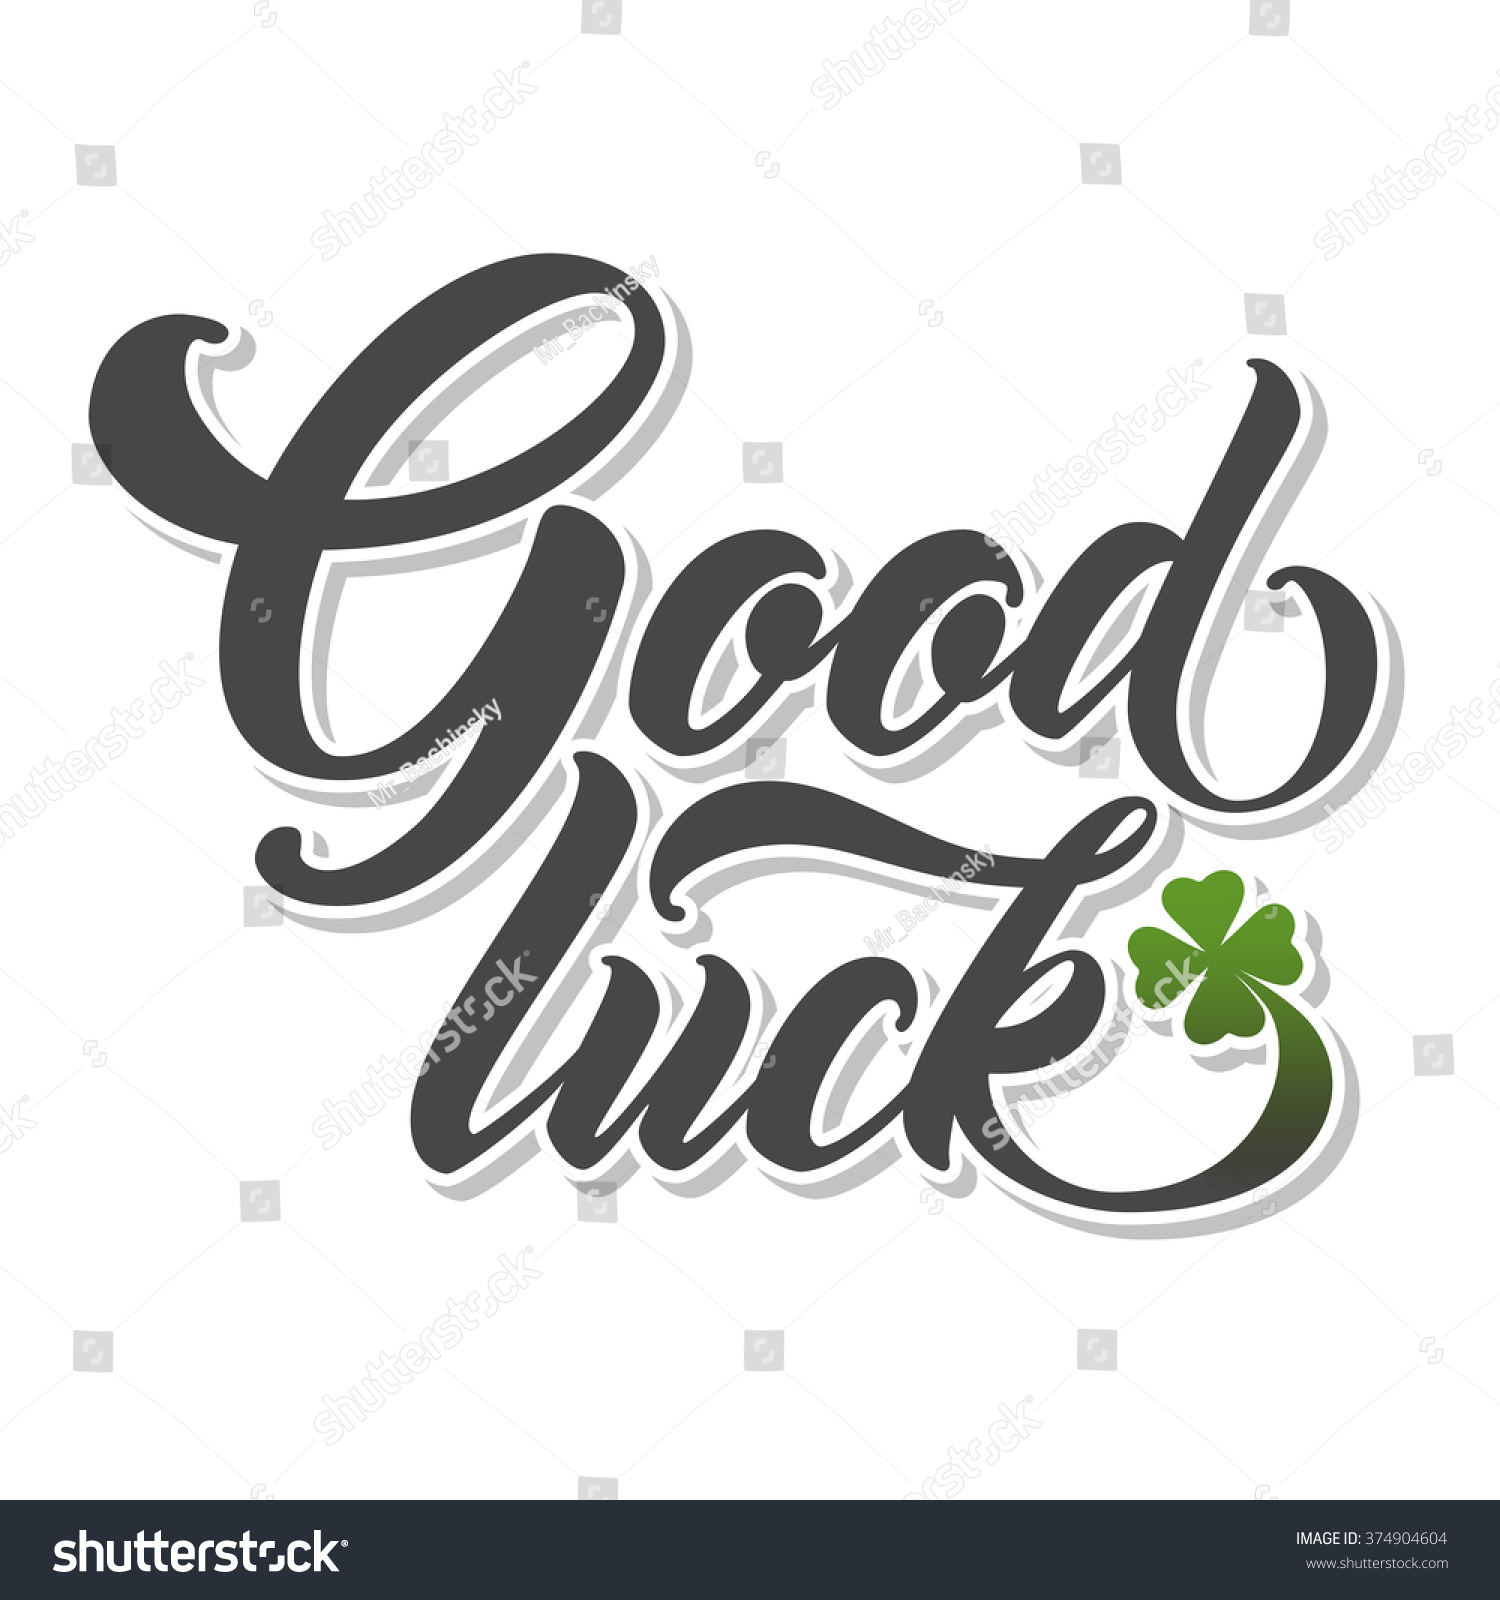 Good luck hand lettering handmade vector calligraphy Images of calligraphy